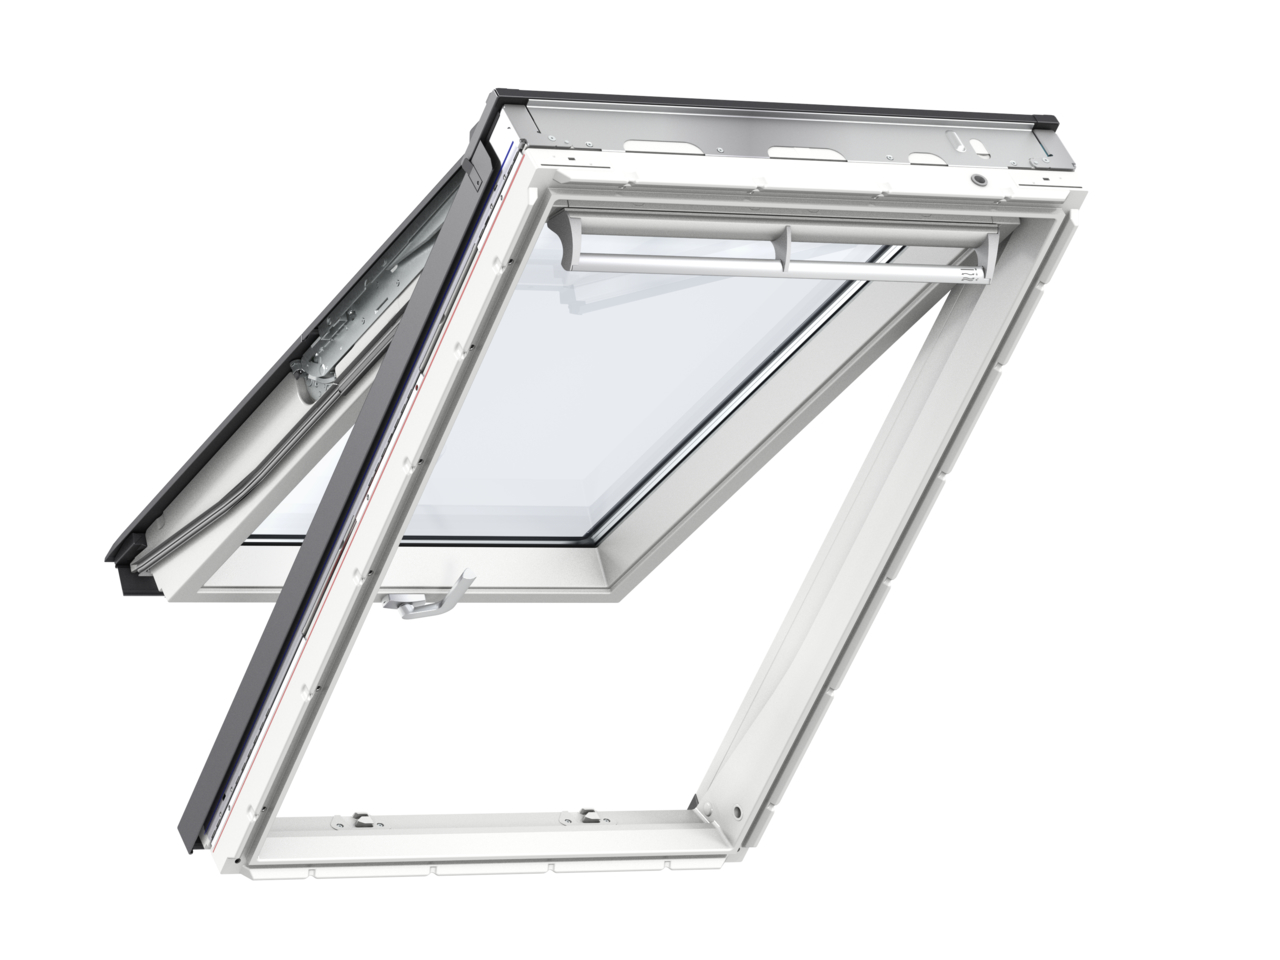 Velux GPU UK08 1340 x 1600mm Top Hung 66Pane Roof Window - White Polyurethane